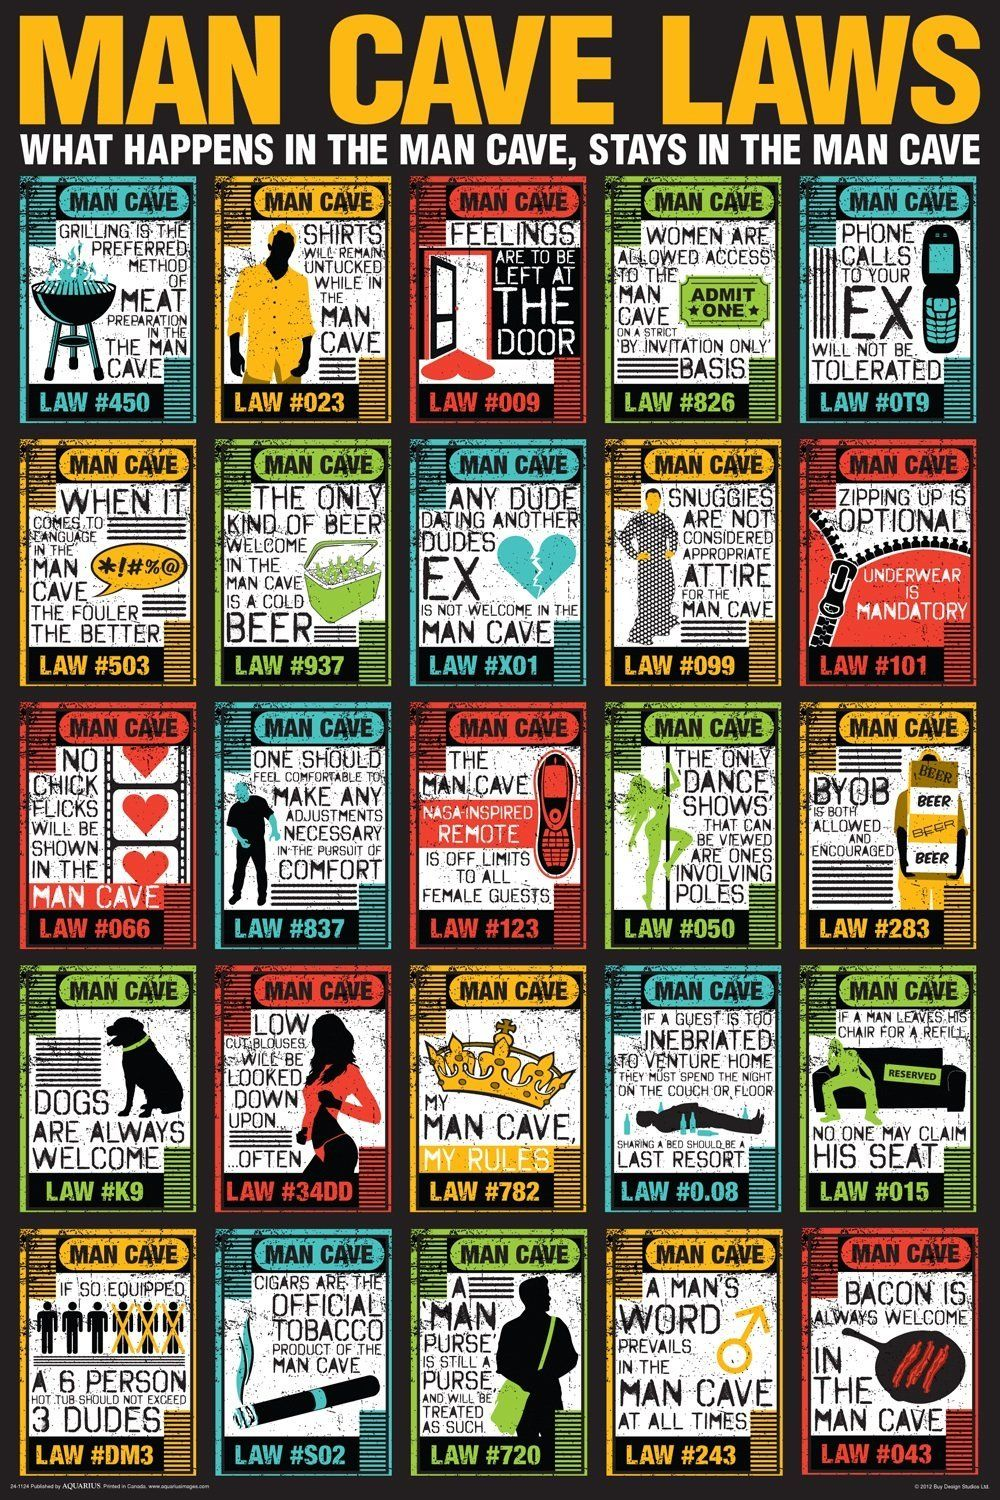 Man Cave Posters For Sale : Man cave laws poster on sale for signs